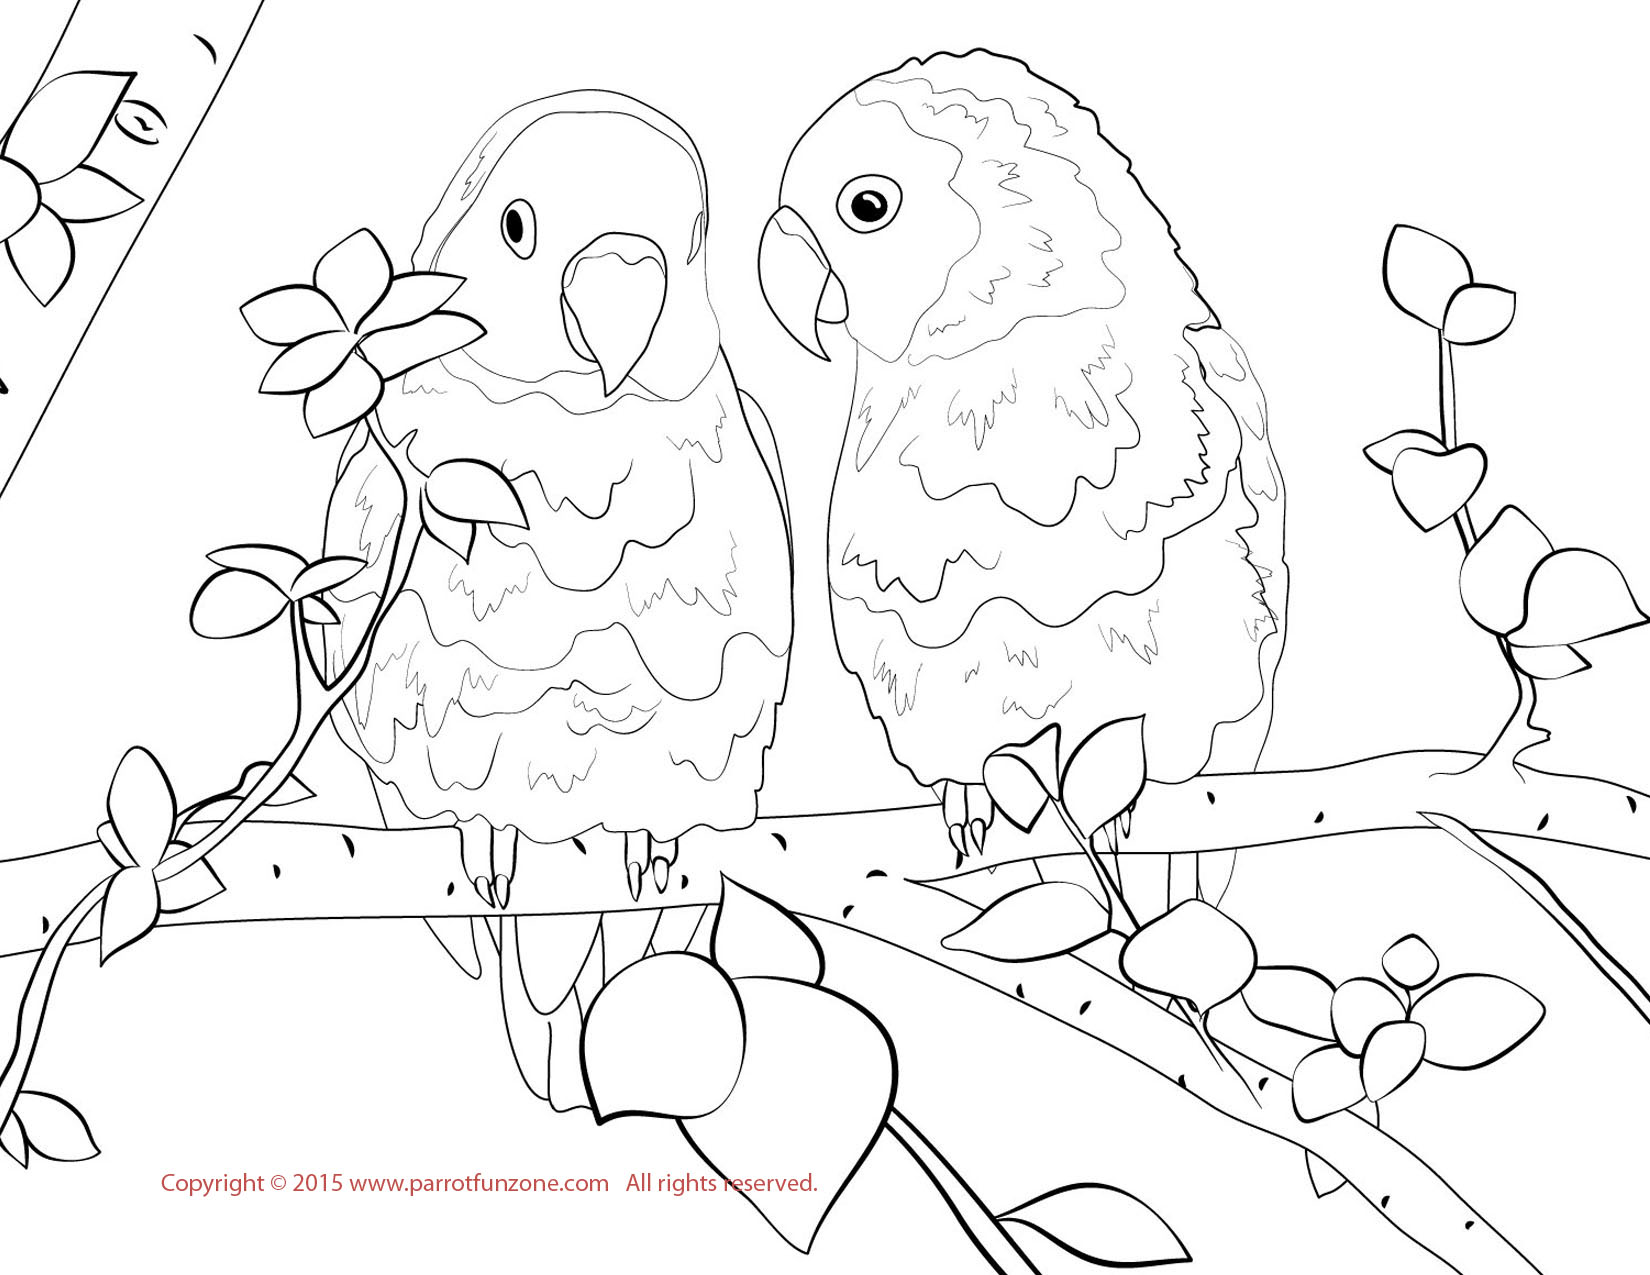 Love Bird Coloring Pages at GetDrawings.com | Free for personal use ...